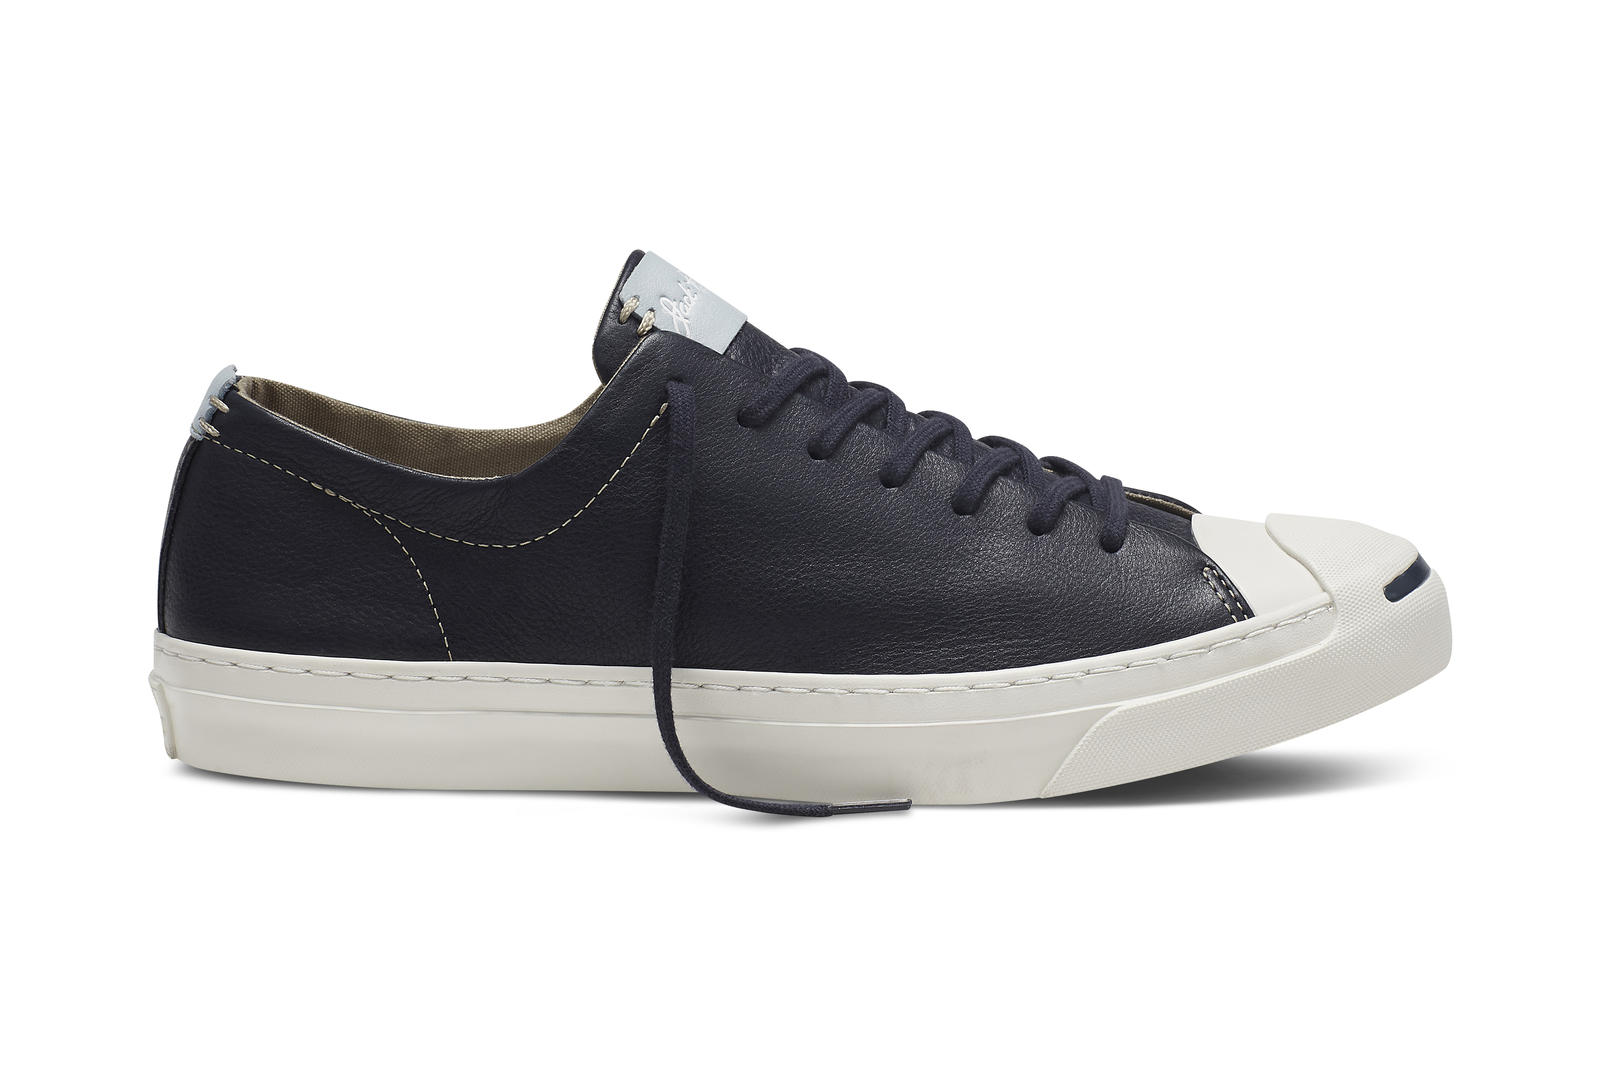 Converse Jack Purcell Tennis Shoes